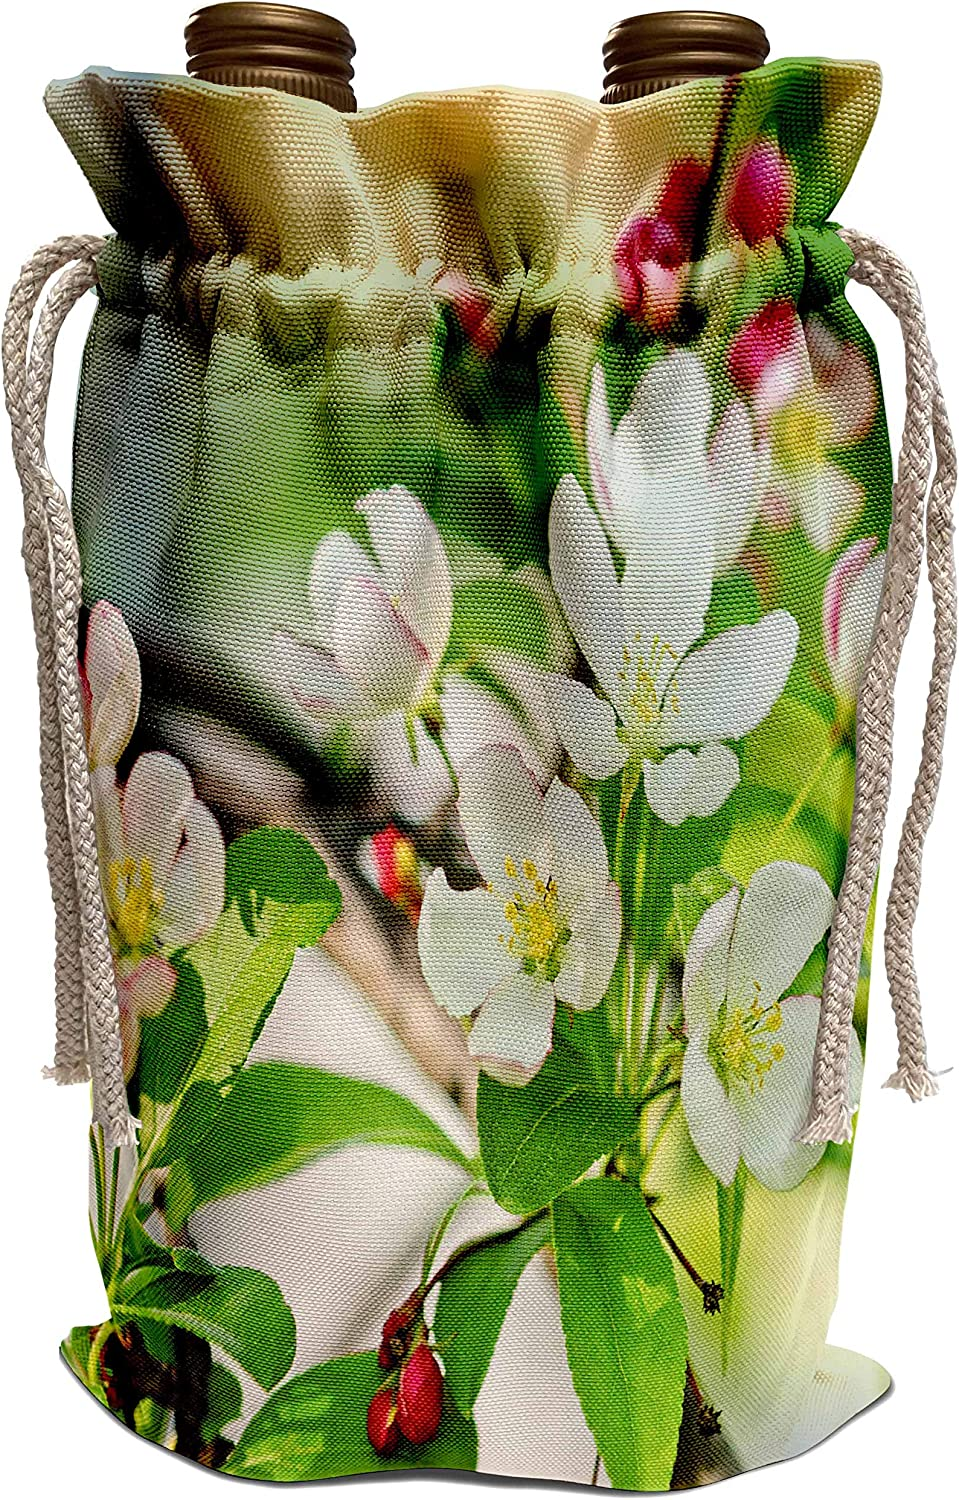 3dRose Alexis Photography - Flowers Crab Apple Blossoms - Cluster of white paradise apple flowers, green leave, red buds - Wine Bag (wbg_305606_1)